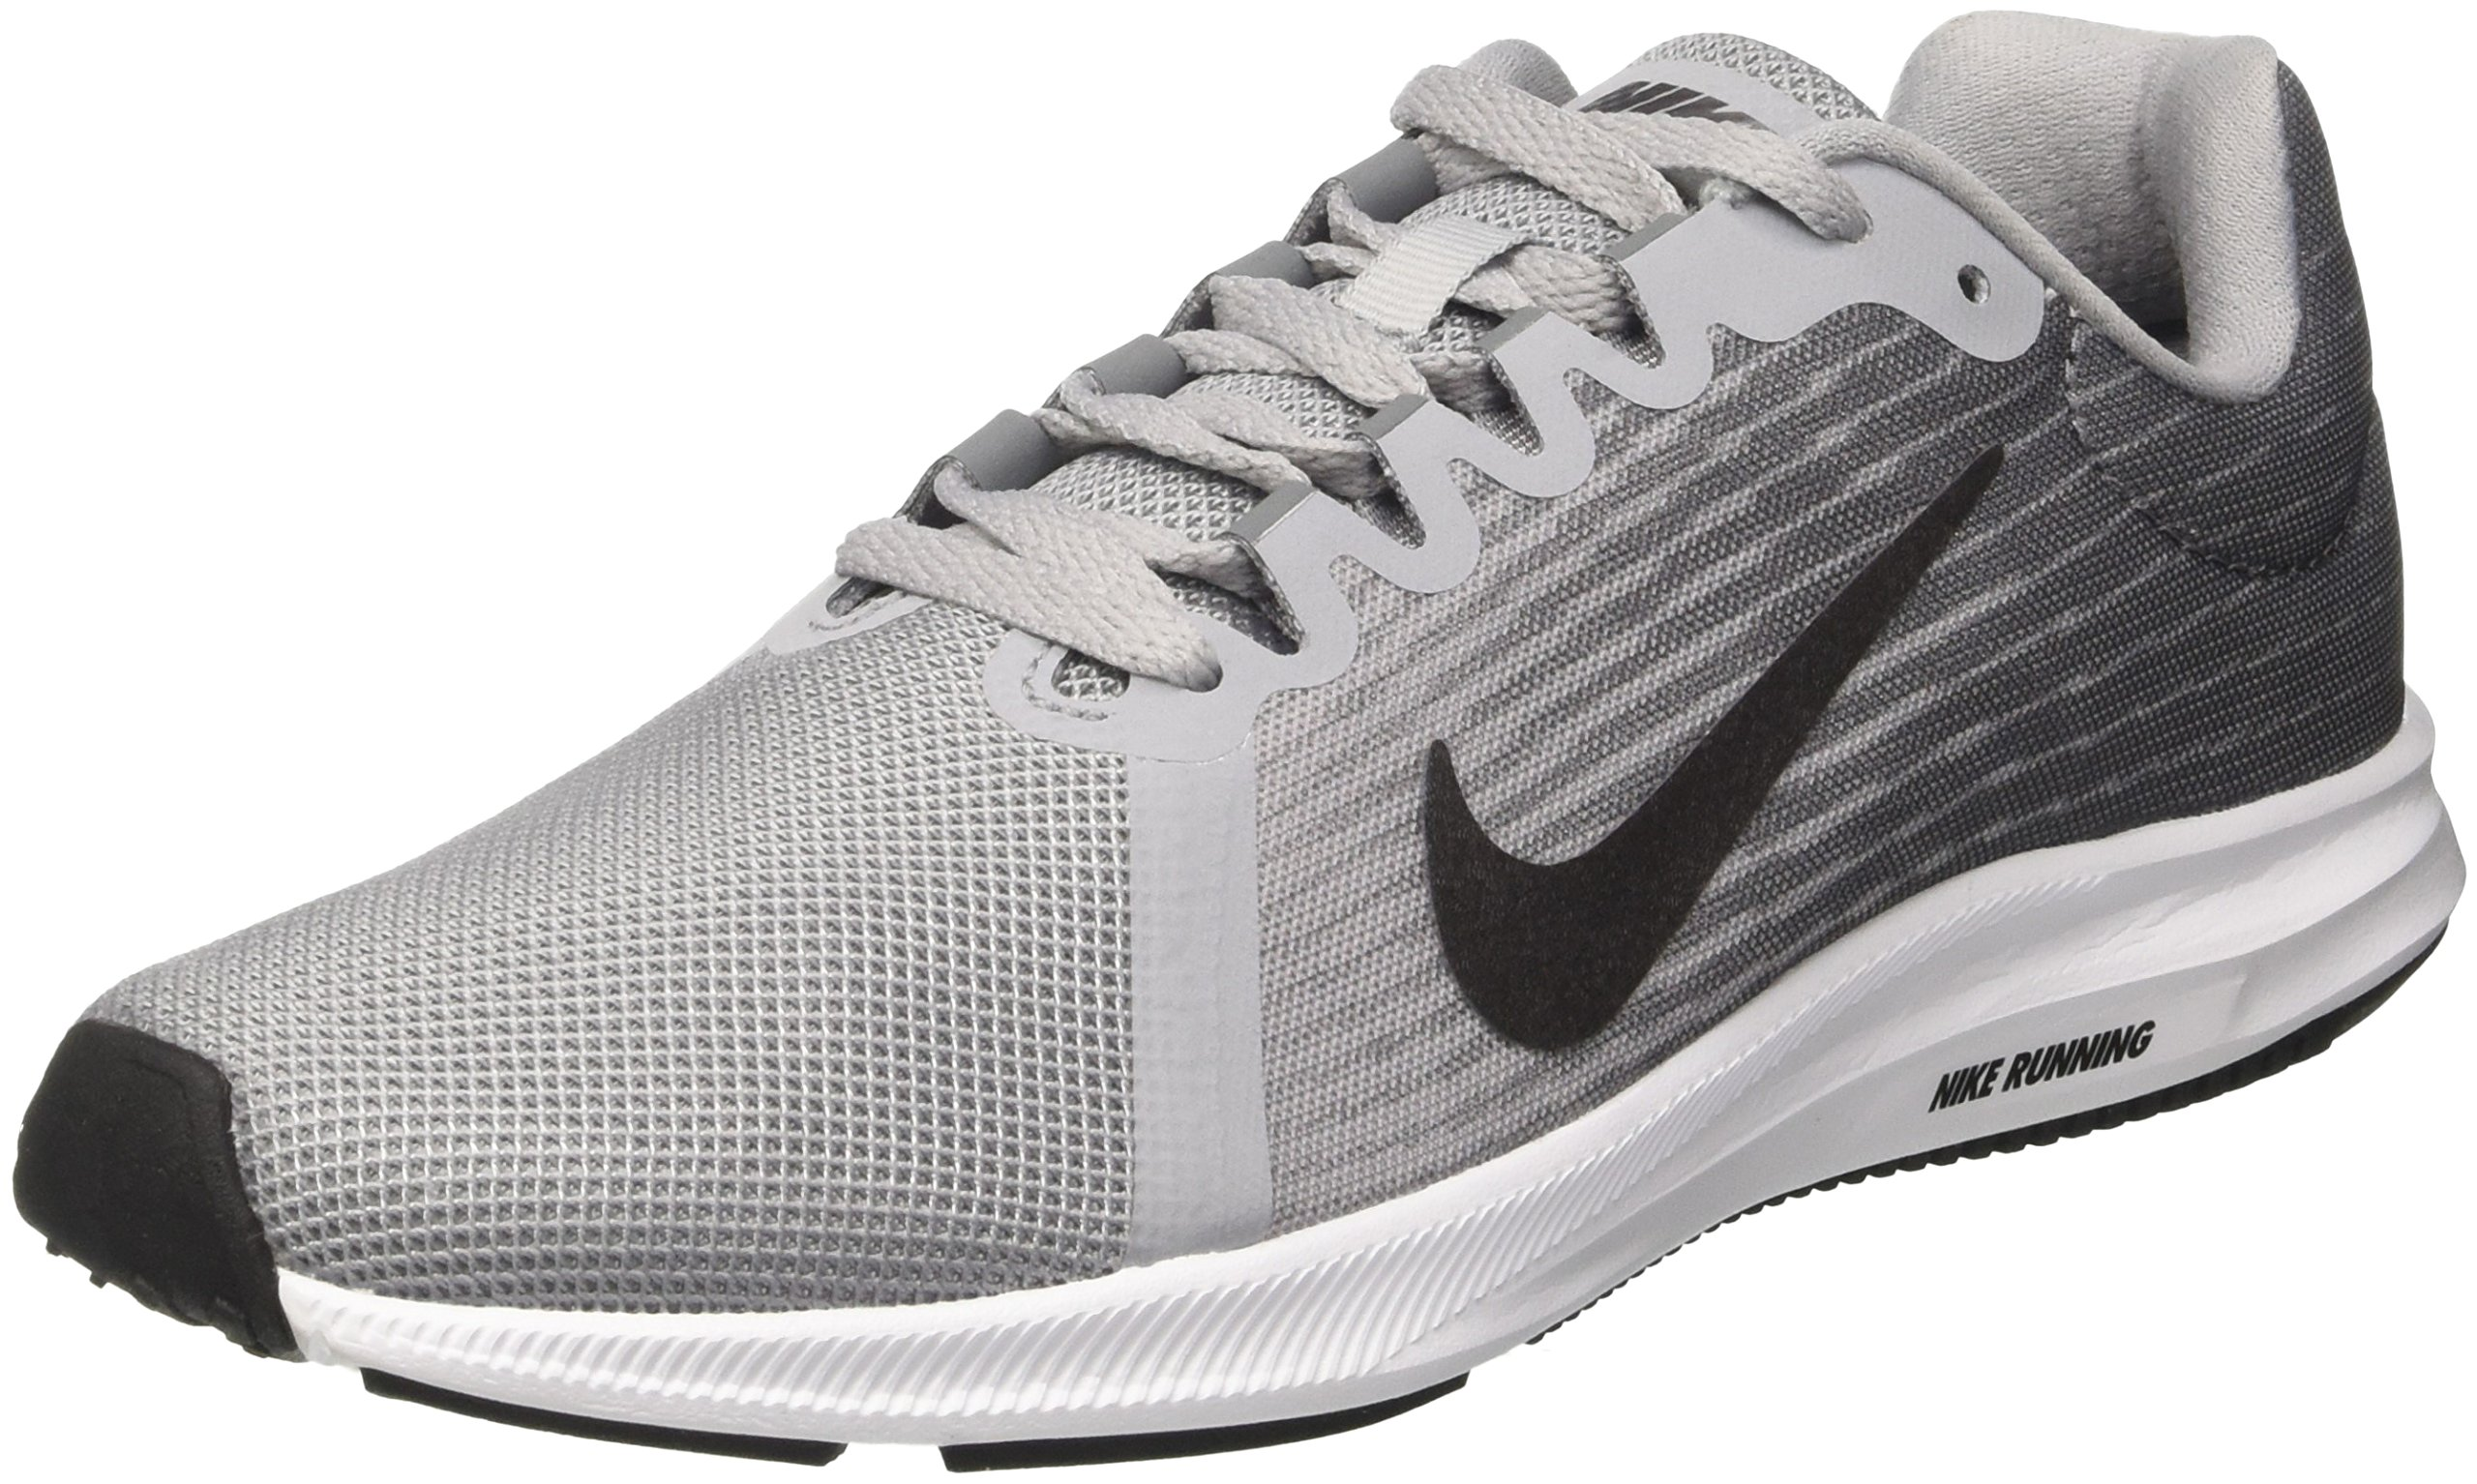 Downshifter 8 Competition Running Shoes